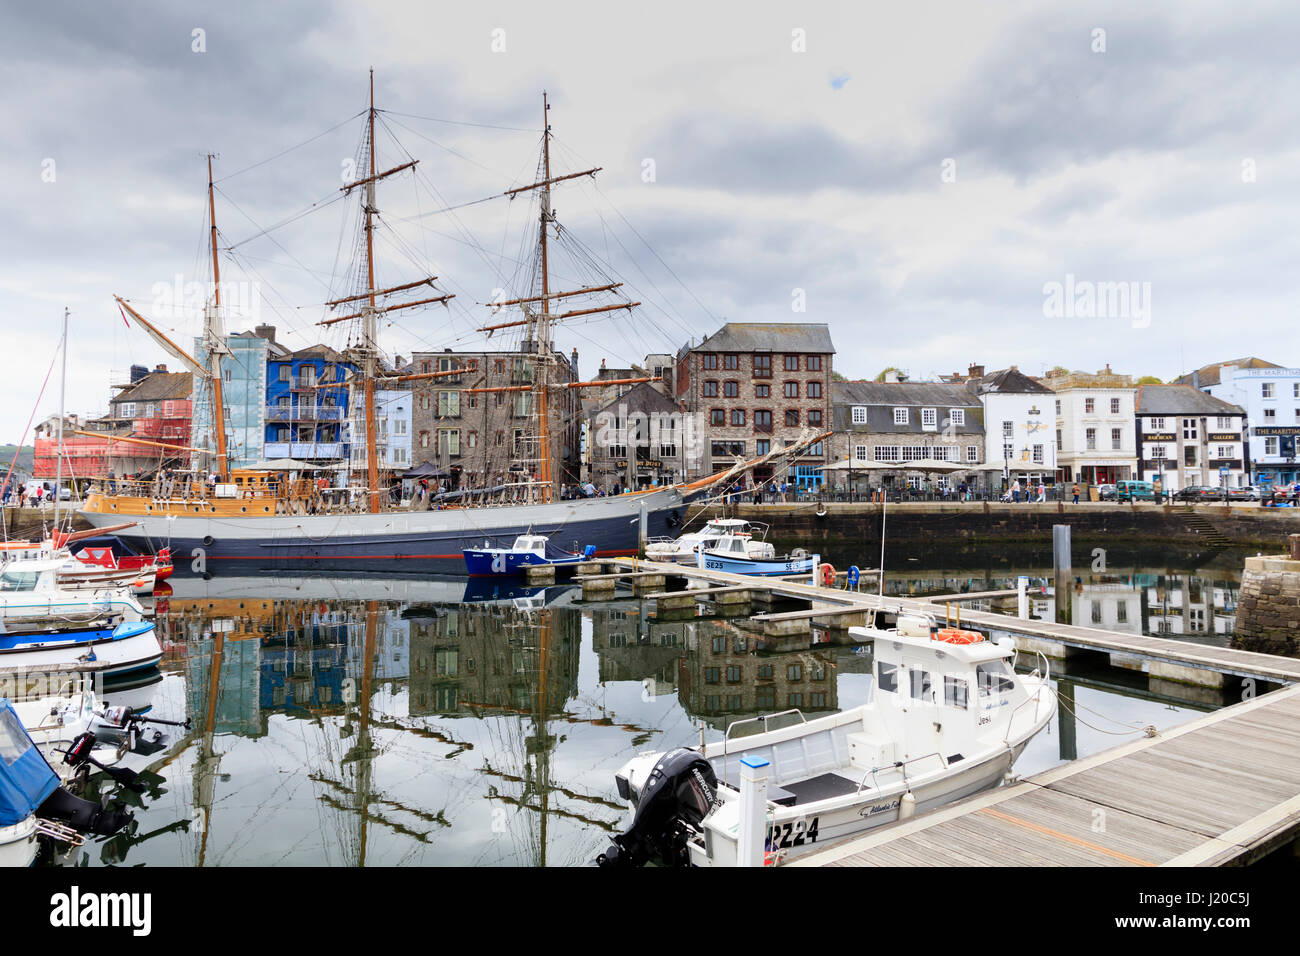 tall-ship-svkaskelot-moored-alongside-the-barbican-in-sutton-harbour-J20C5J.jpg